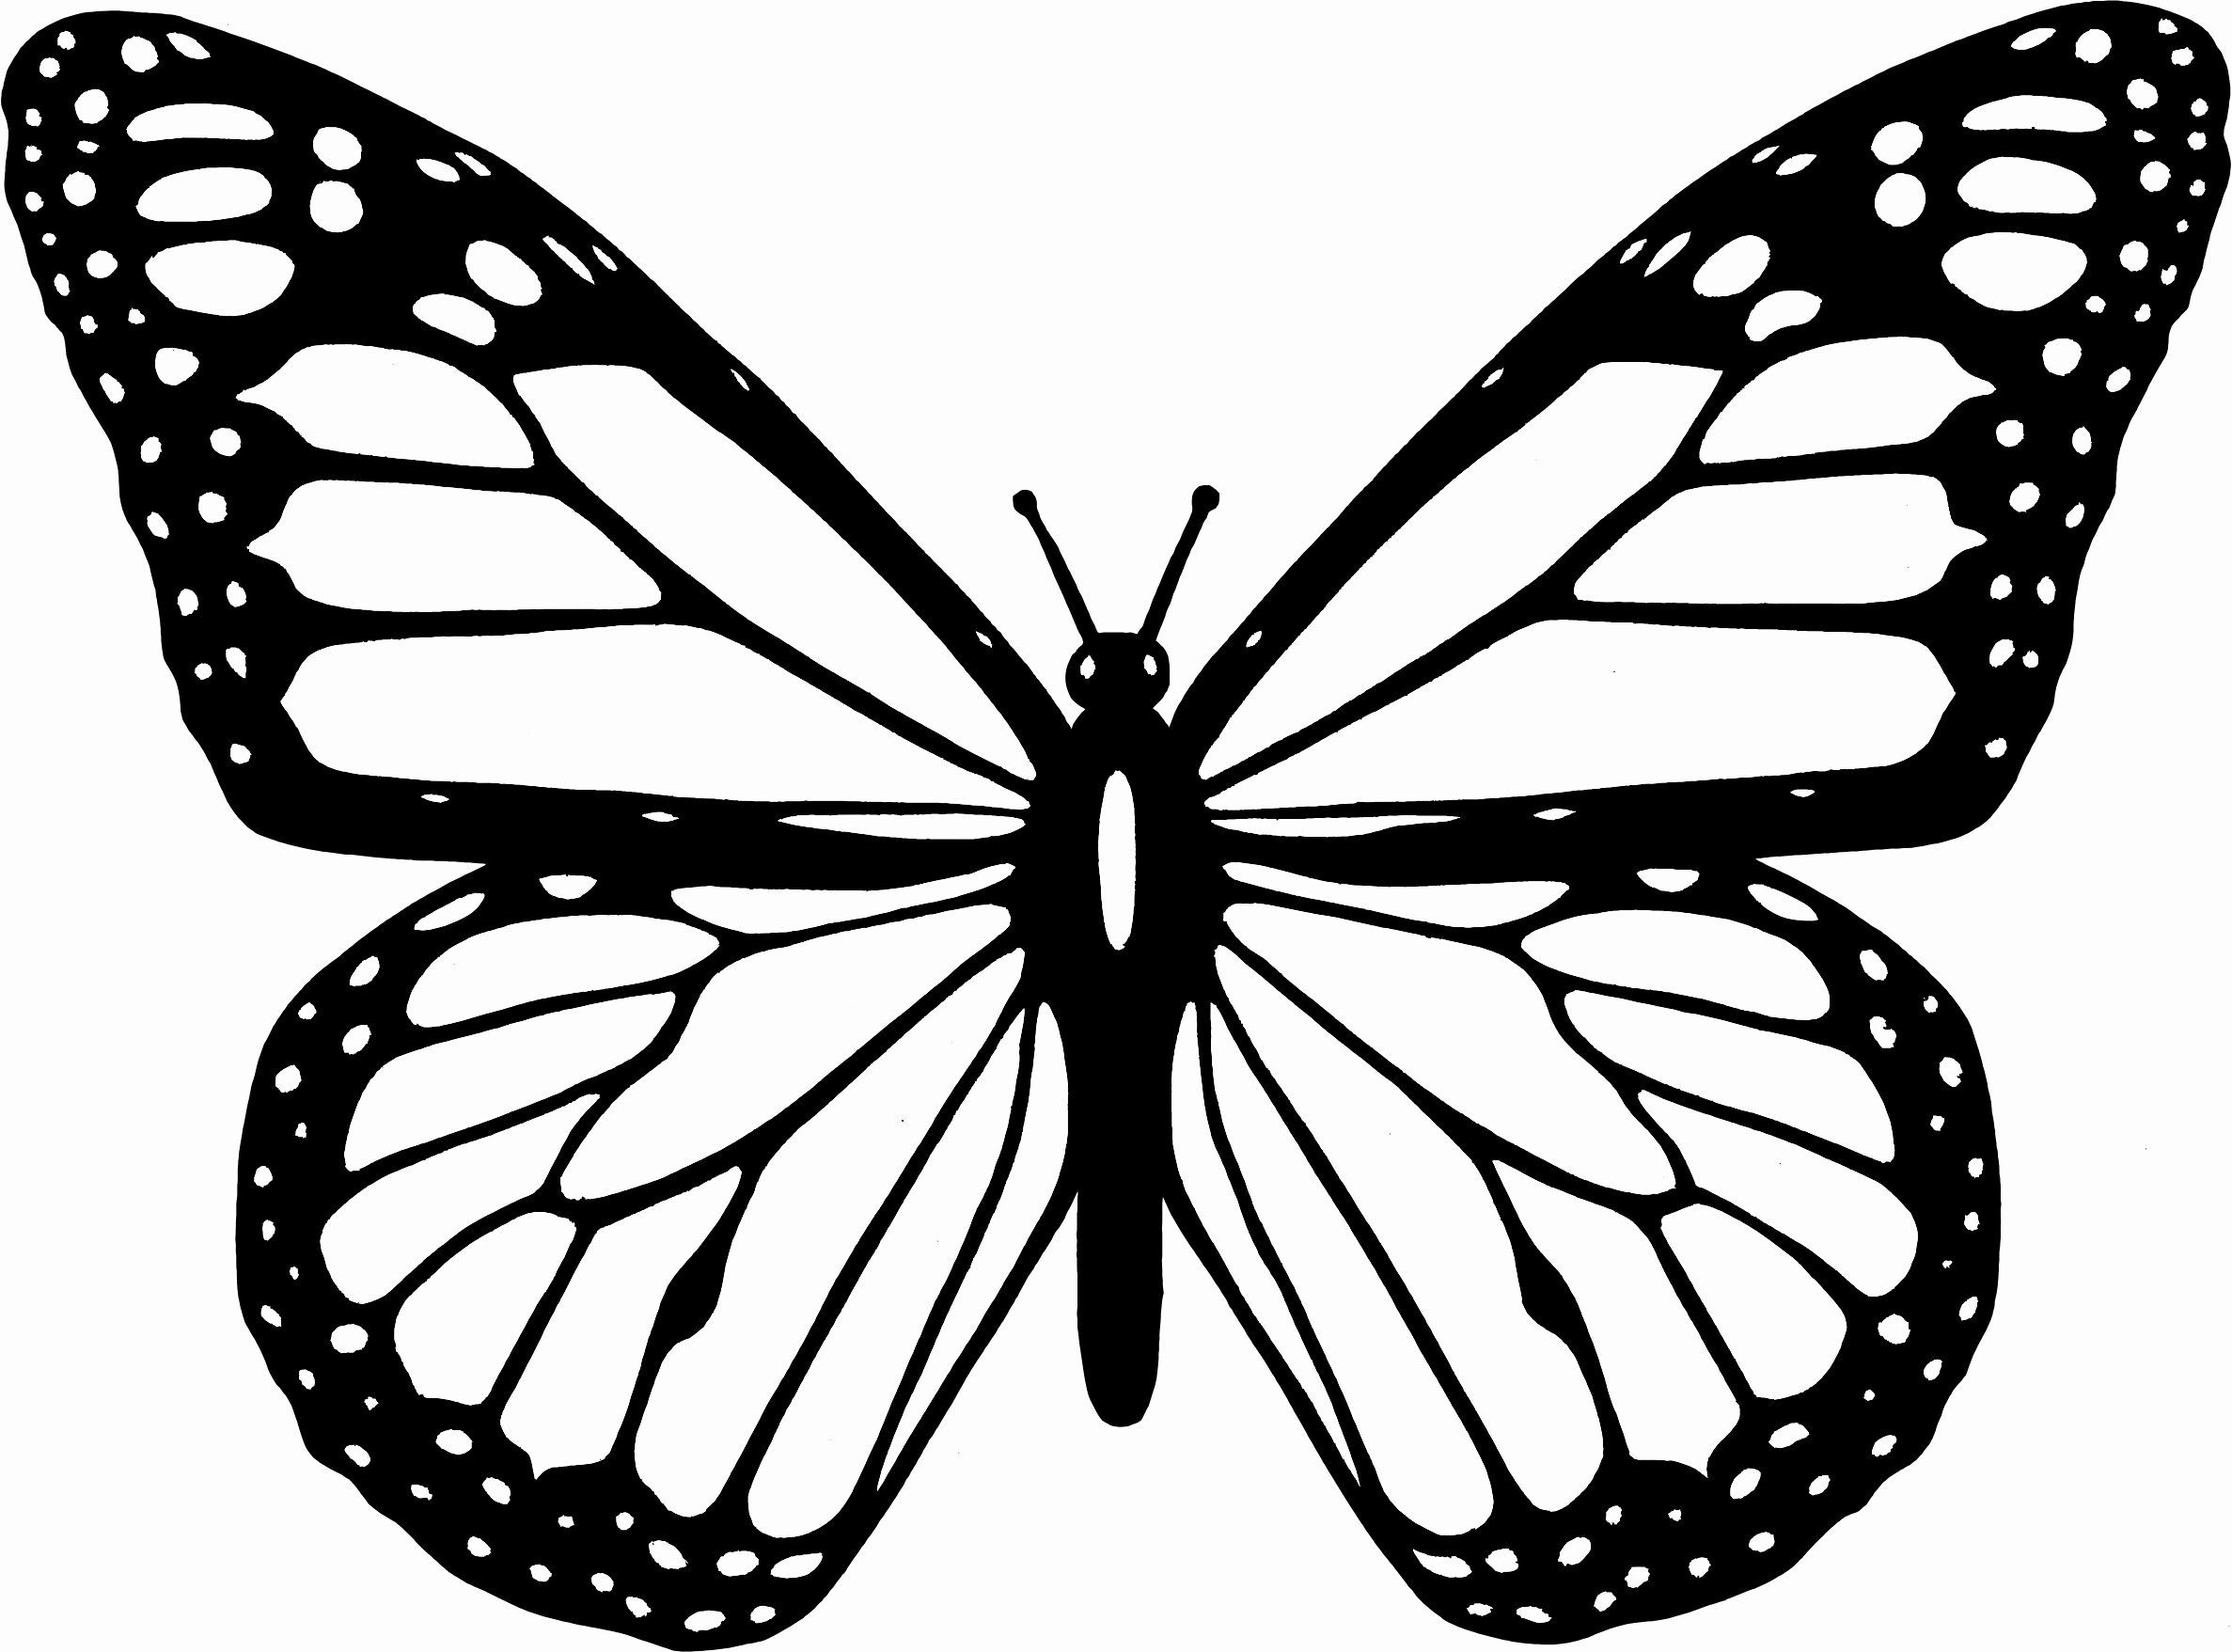 Monarch Butterfly Coloring Page Inspirational Monarch Butterfly Coloring Pages To Print Butterfly Clip Art Butterfly Coloring Page Butterfly Printable